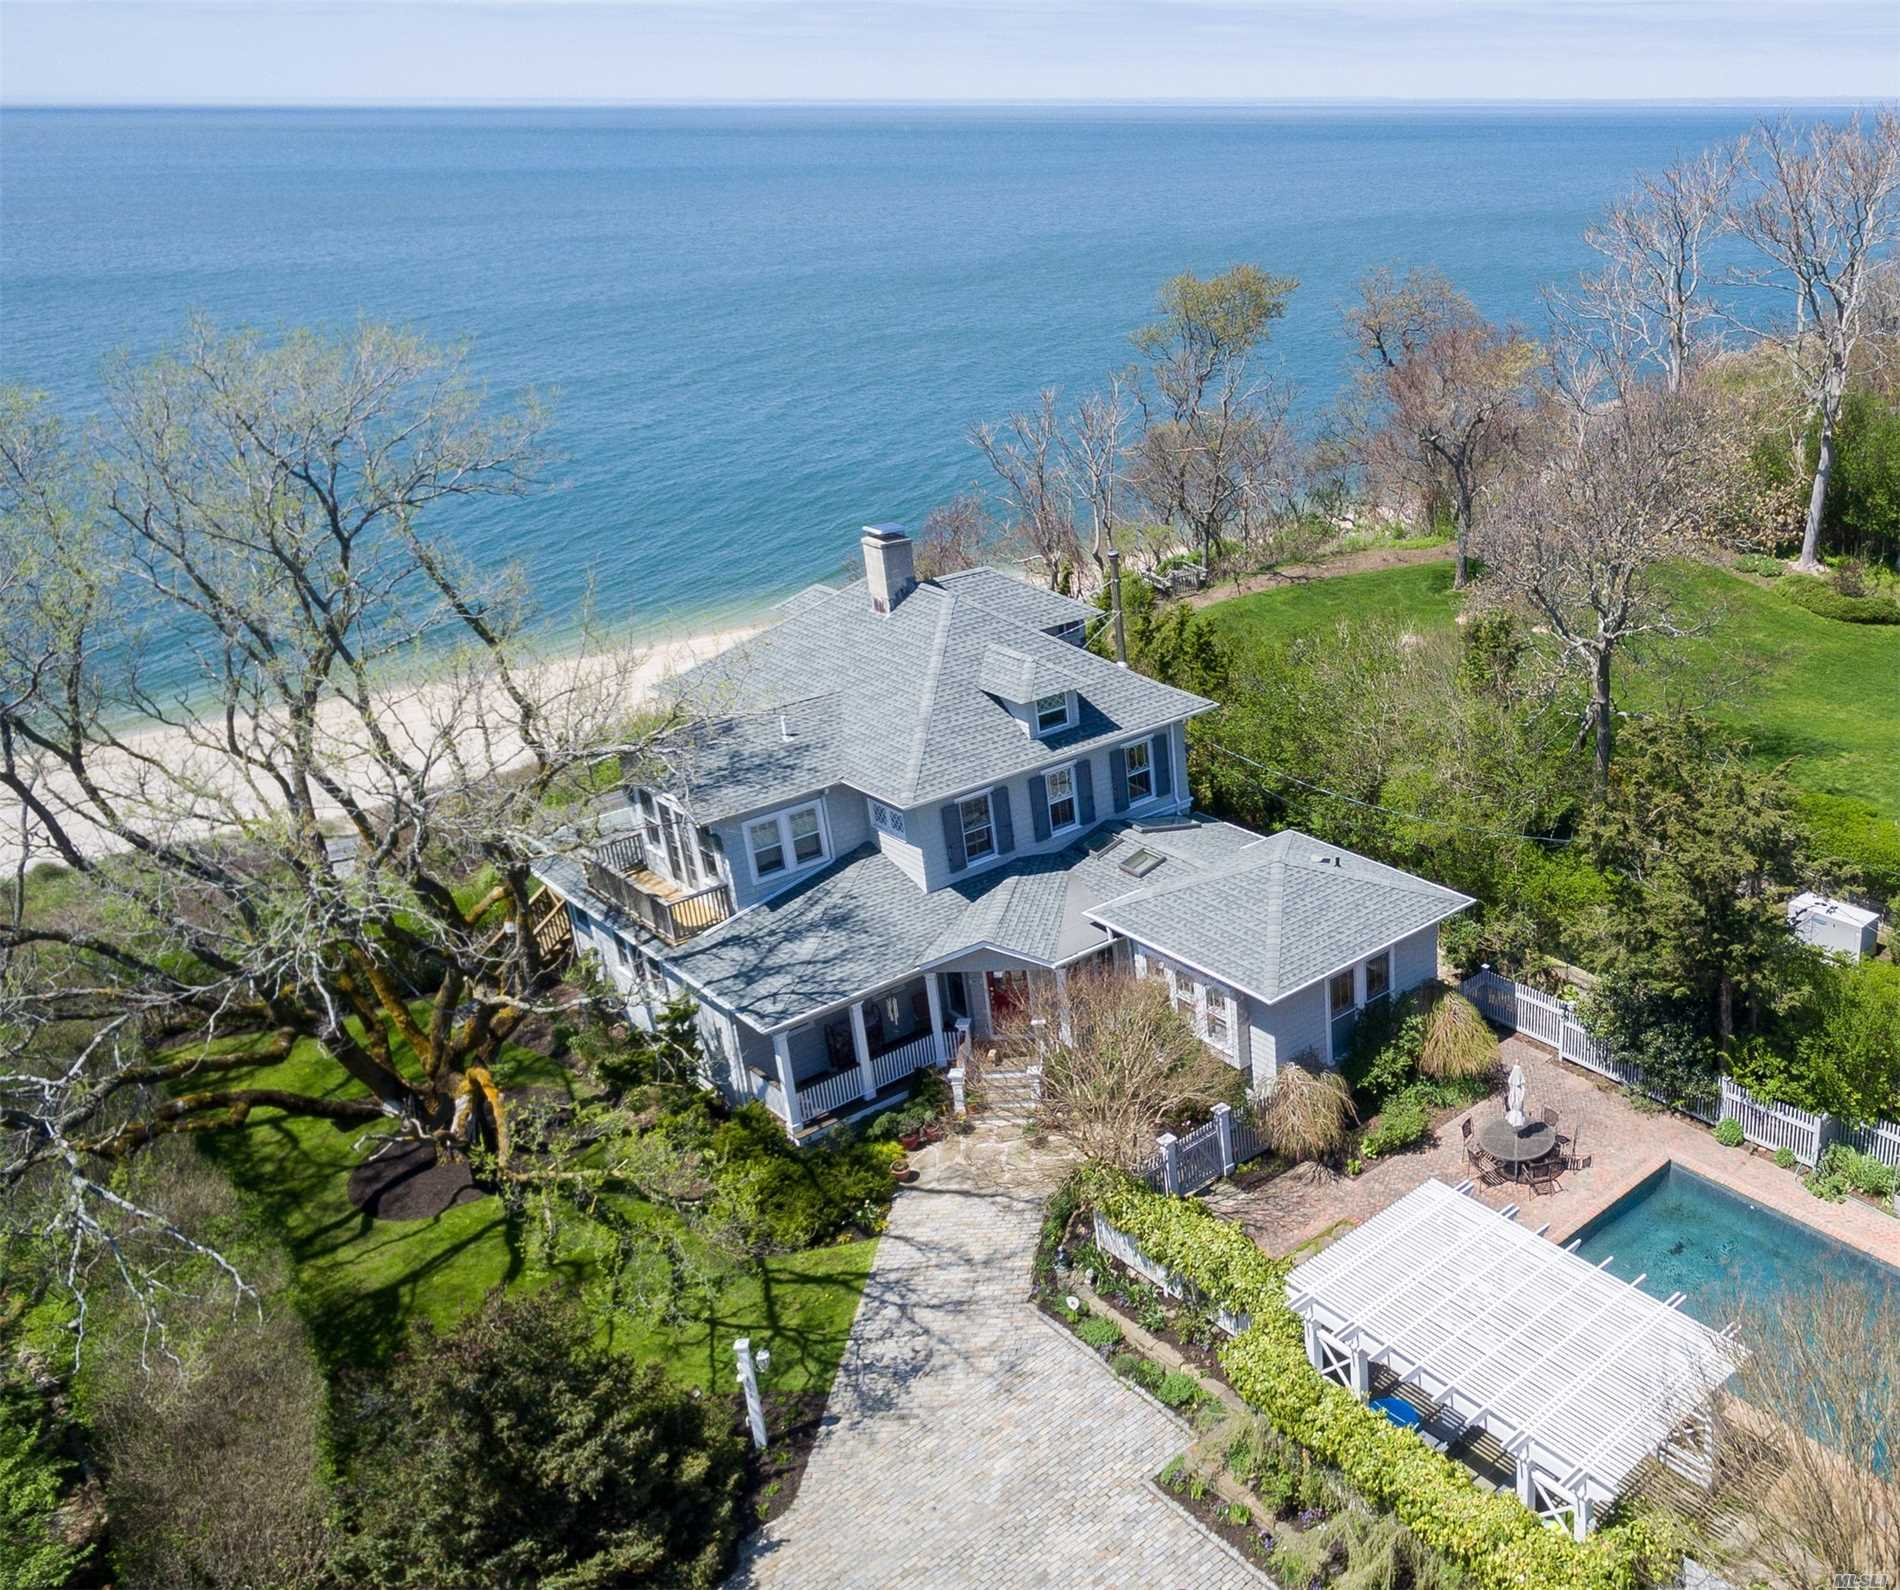 Exquisitely restored mint antique home overlooking LI Sound. Panoramic water views from many rooms, waterside patio, waterside deck, 2nd floor waterside balcony. Large eat-in gourmet kitchen, wood burning fireplace, 2 gas stoves, CAC, updated appliances. Private access to beach, heated gunite pool with pergola covered patio & hot tub. Original leaded glass cabinets and feaures.